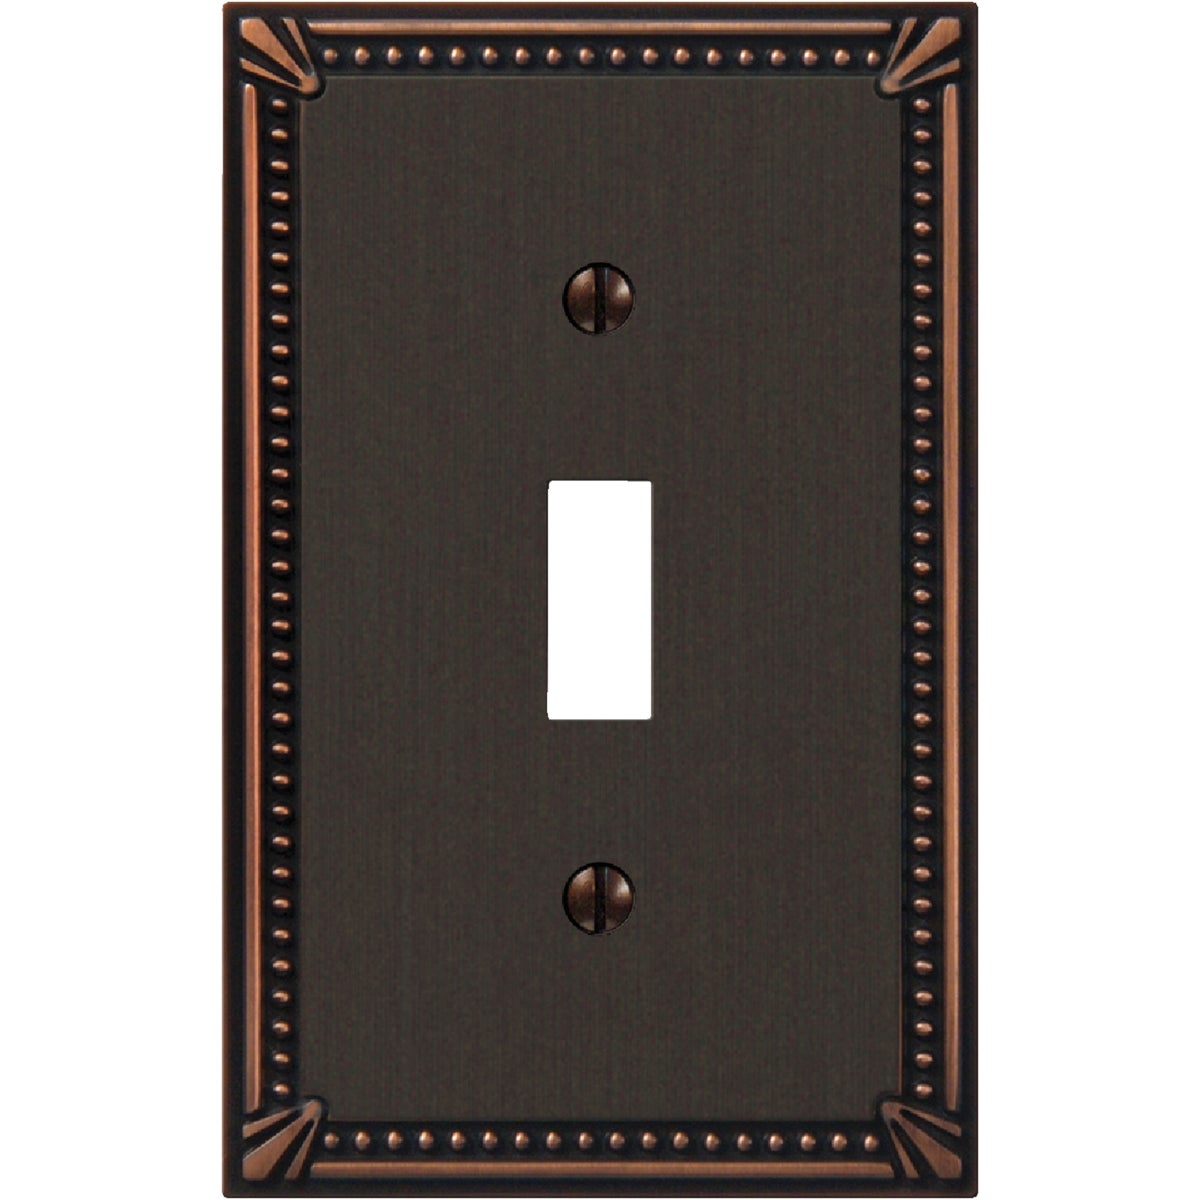 AB 1-TOGGLE WALLPLATE - 3001AZ by Jackson Deerfield Mf